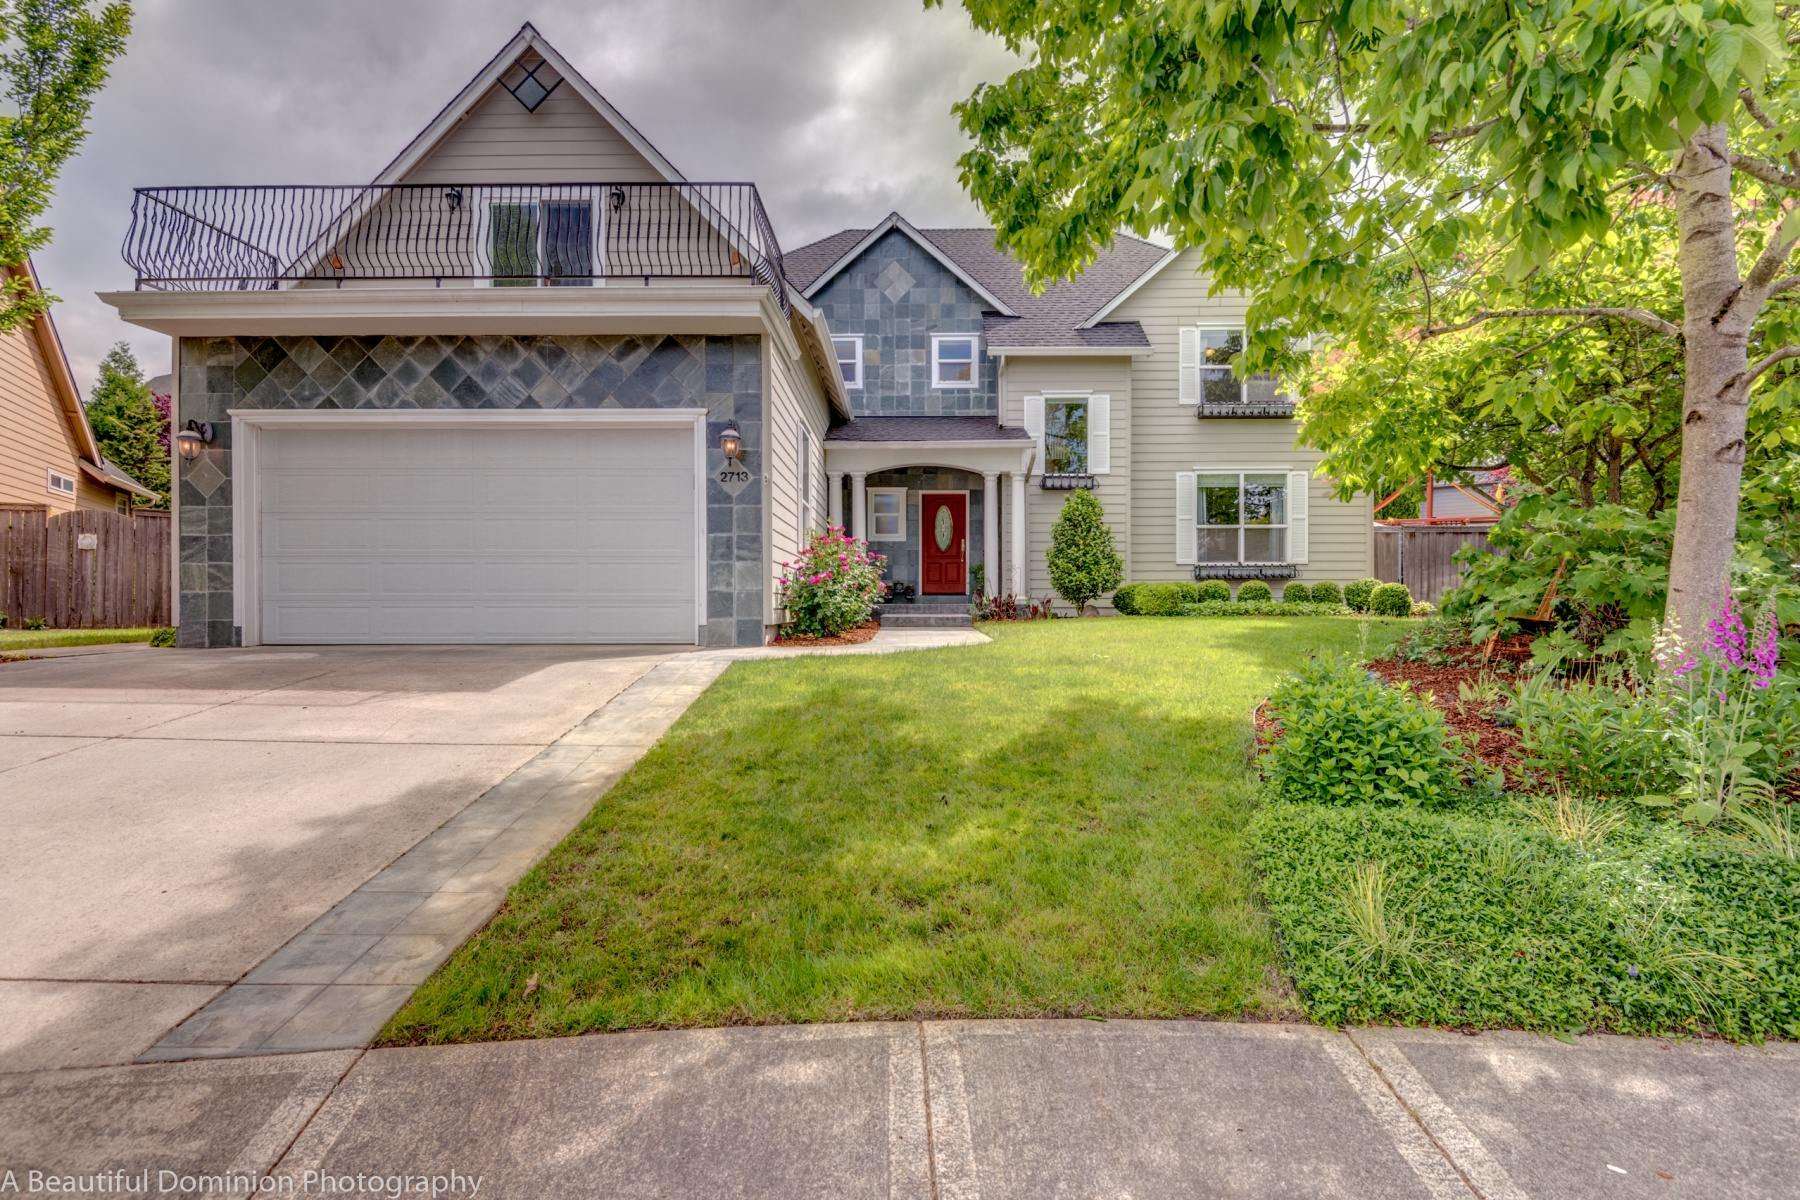 Single Family Home for Sale at 2002 Parade Home in Camas 2713 NW 30TH Cir Camas, Washington 98607 United States